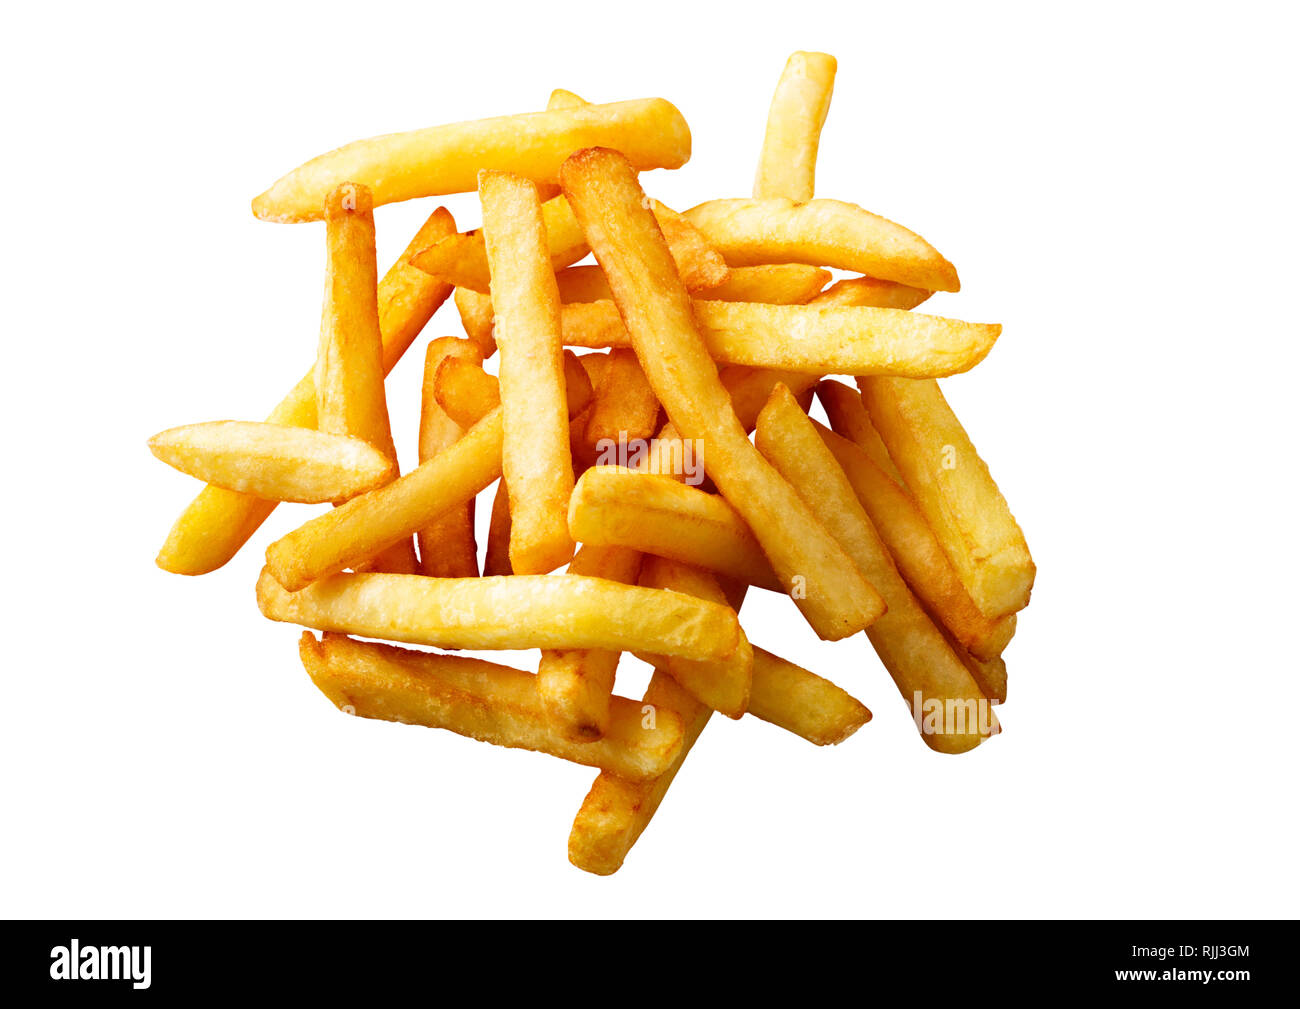 Heap of french fries isolated on white against white background - Stock Image